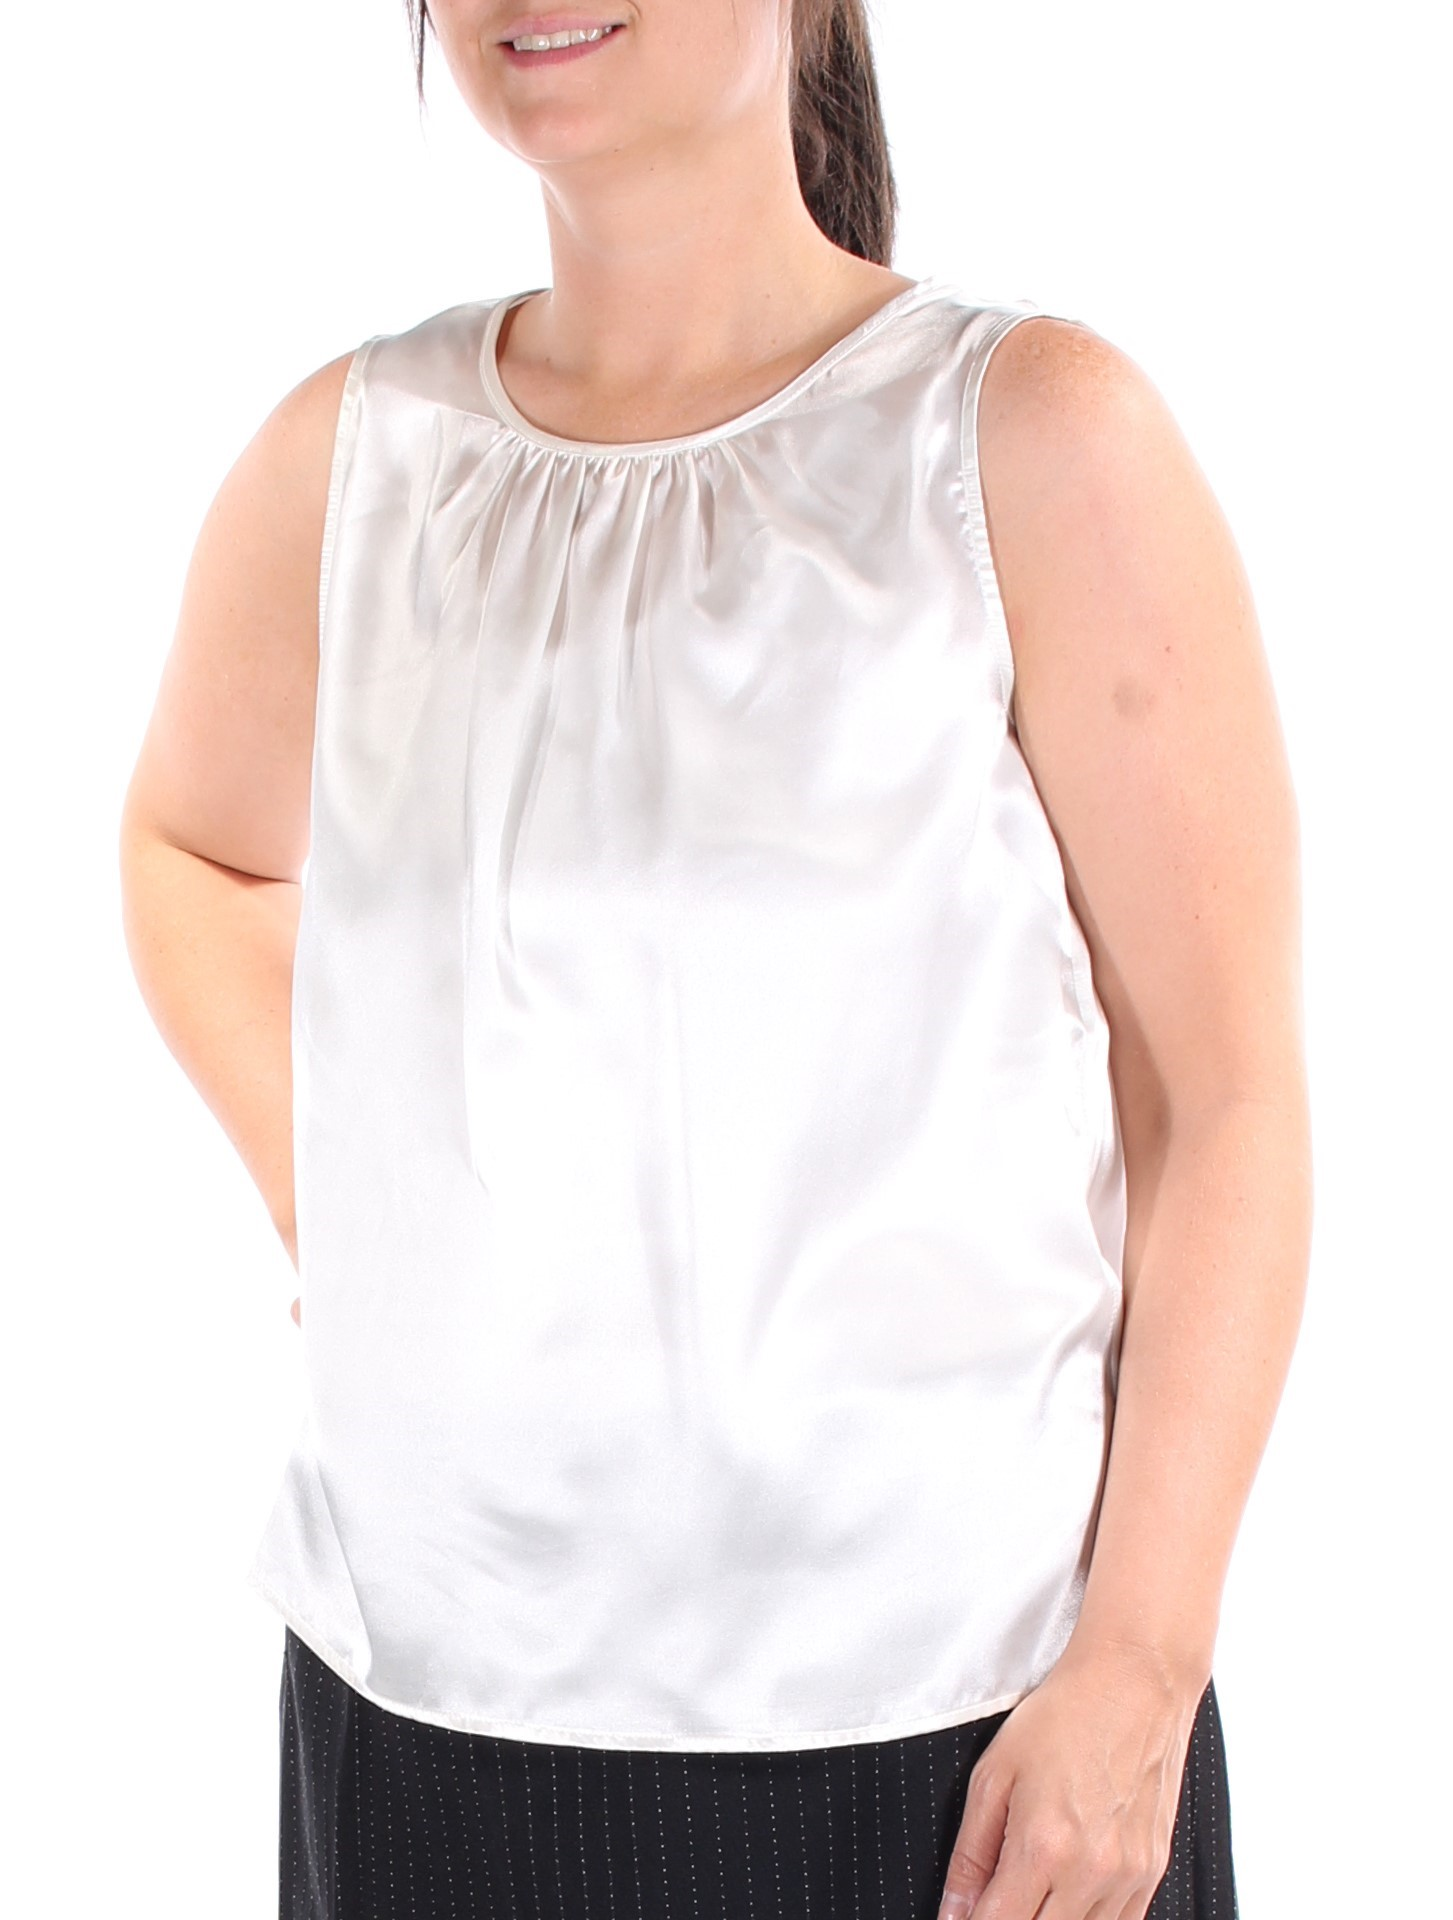 LE SUIT Womens New 1041 Ivory Jewel Neck Sleeveless Casual Top 12 B+ ... 4d32fd39d